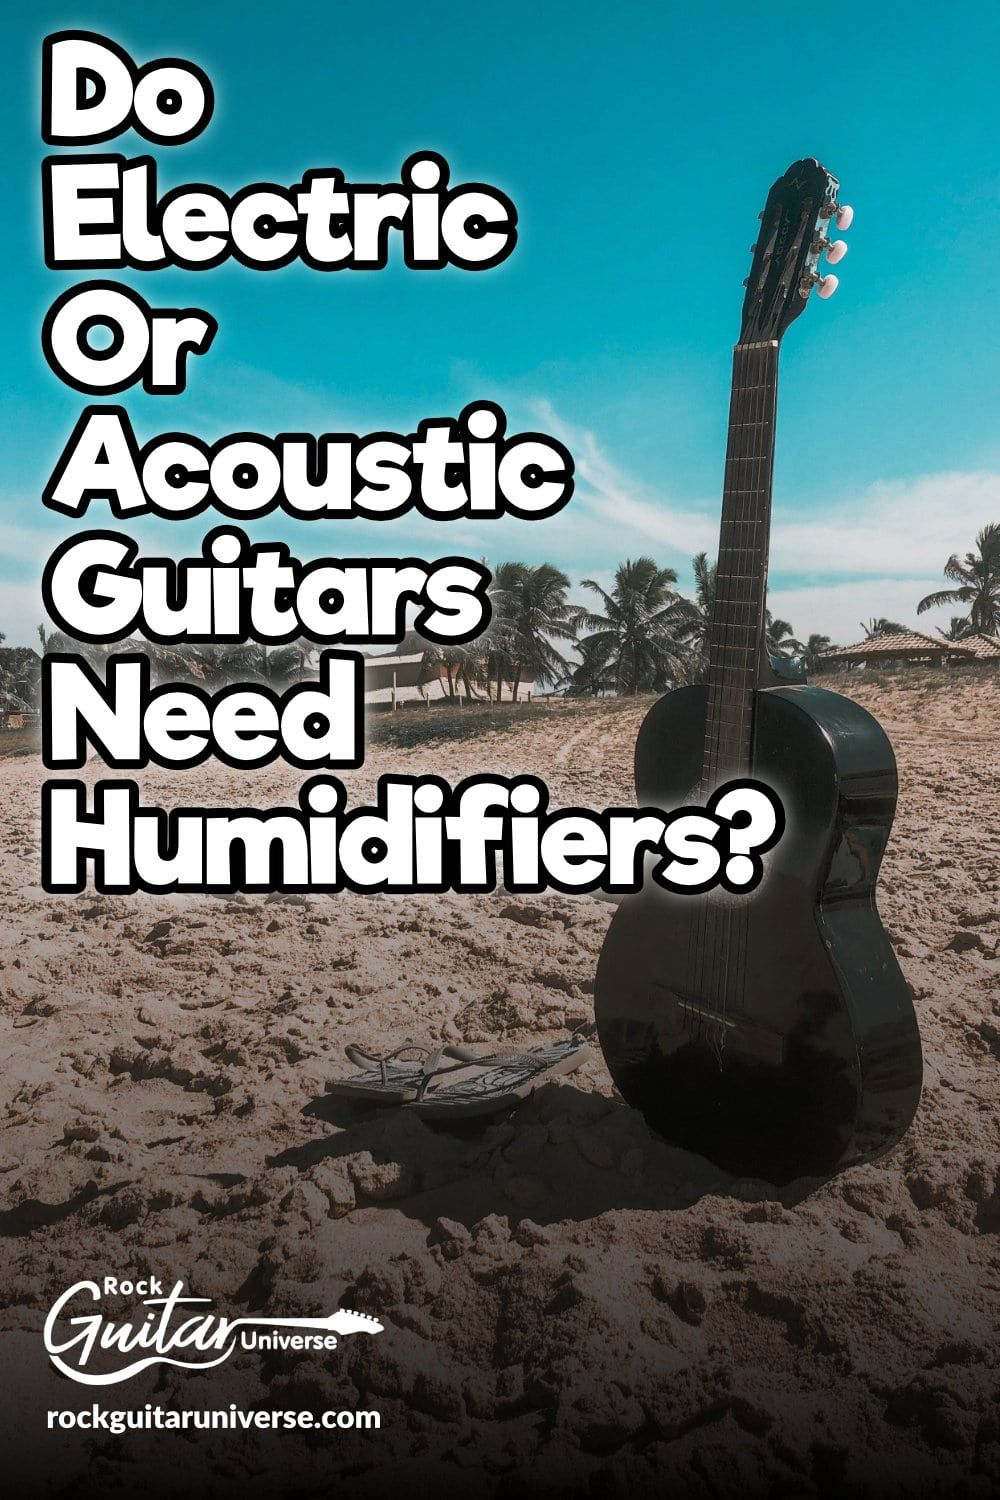 Do Electric Or Acoustic Guitars Need Humidifiers Rock Guitar Universe Acoustic Guitar Rock Guitar Acoustic